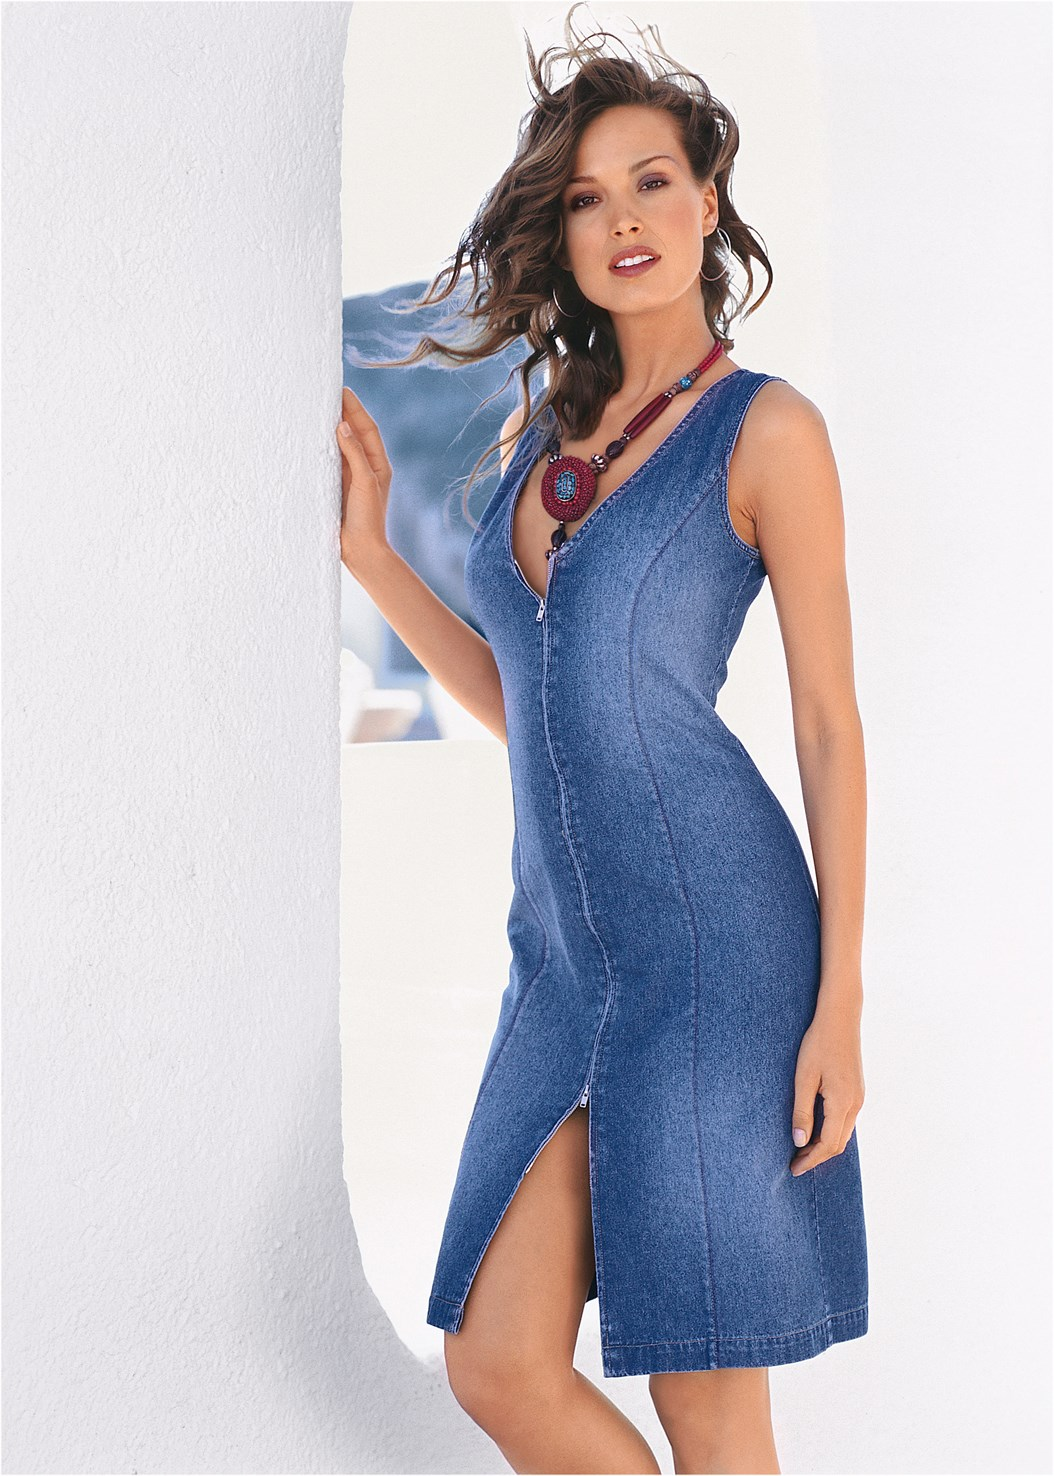 Zip Detail Denim Dress,Push Up Bra Buy 2 For $40